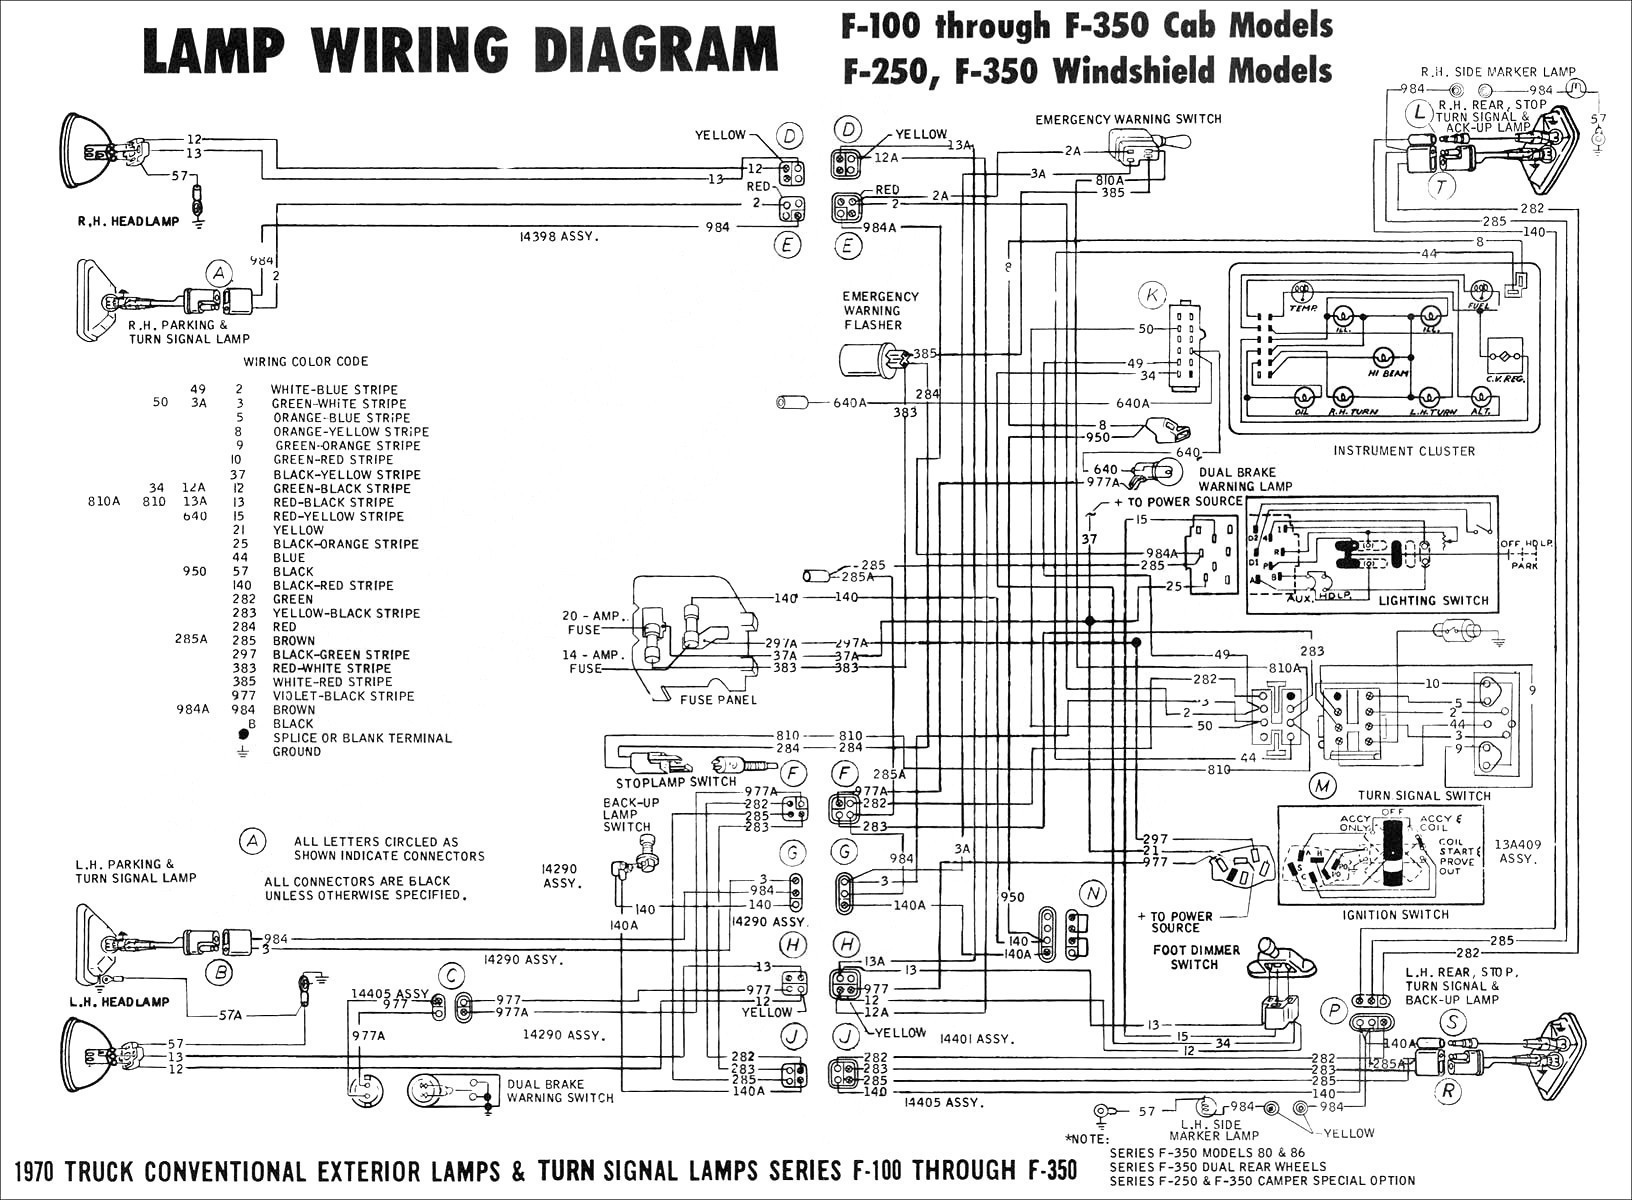 1996 toyota rav4 engine diagram the following schematic illustrates the 2006 toyota rav4 instrument of 1996 toyota rav4 engine diagram 07 toyota tundra wiring diagram wz schwabenschamanen de \u2022